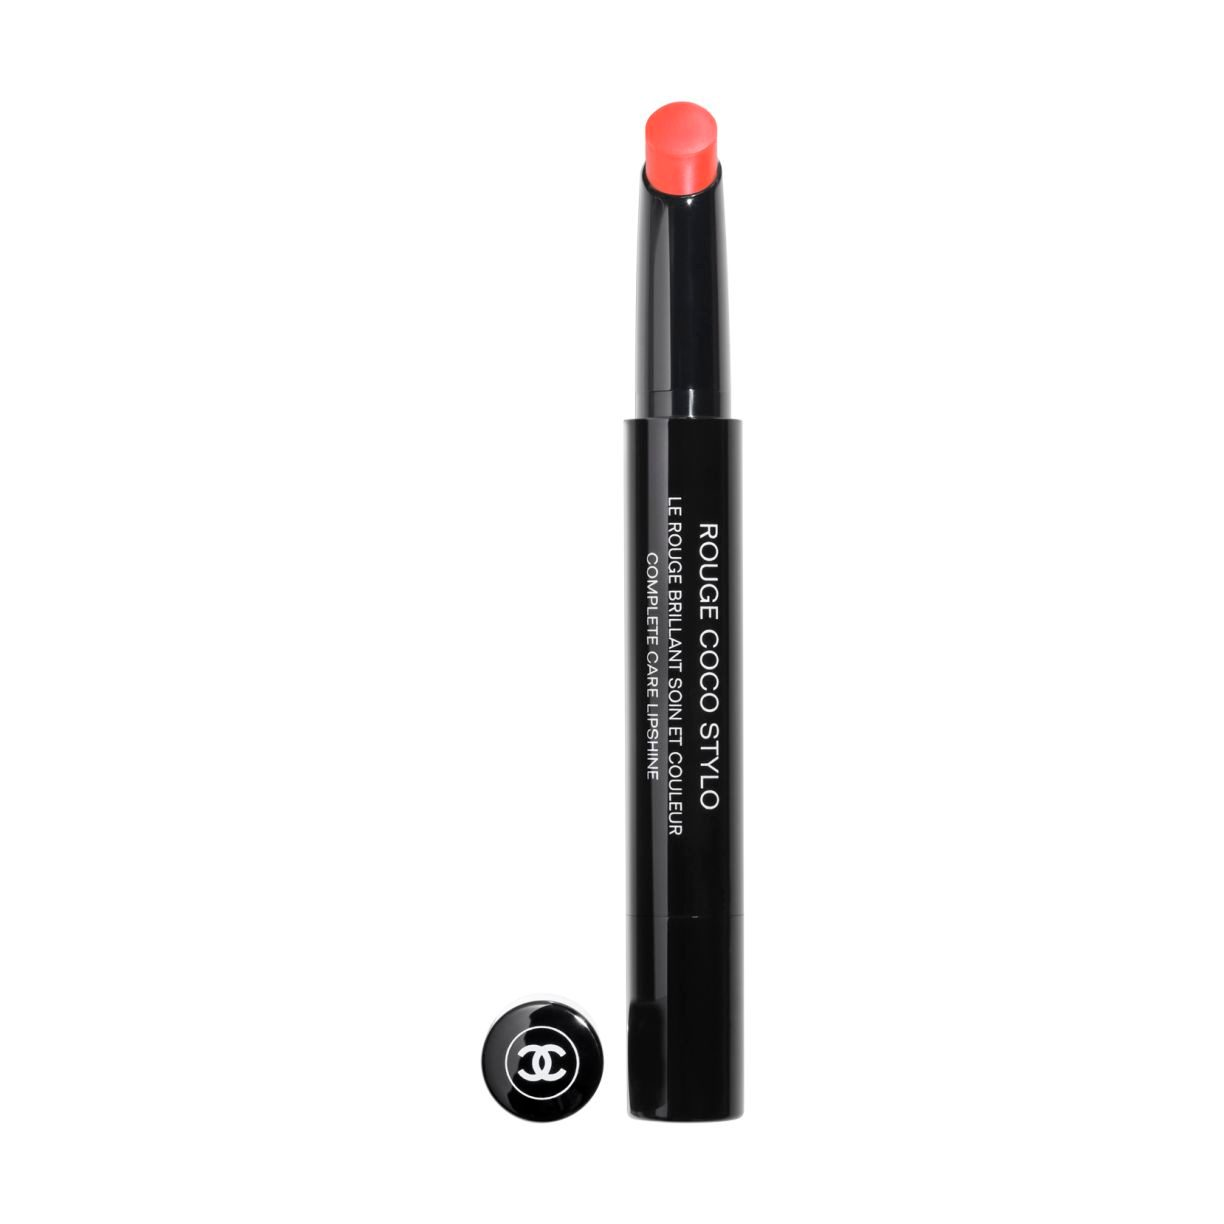 ROUGE COCO STYLO BARRA DE LABIOS. 204 ARTICLE 2G